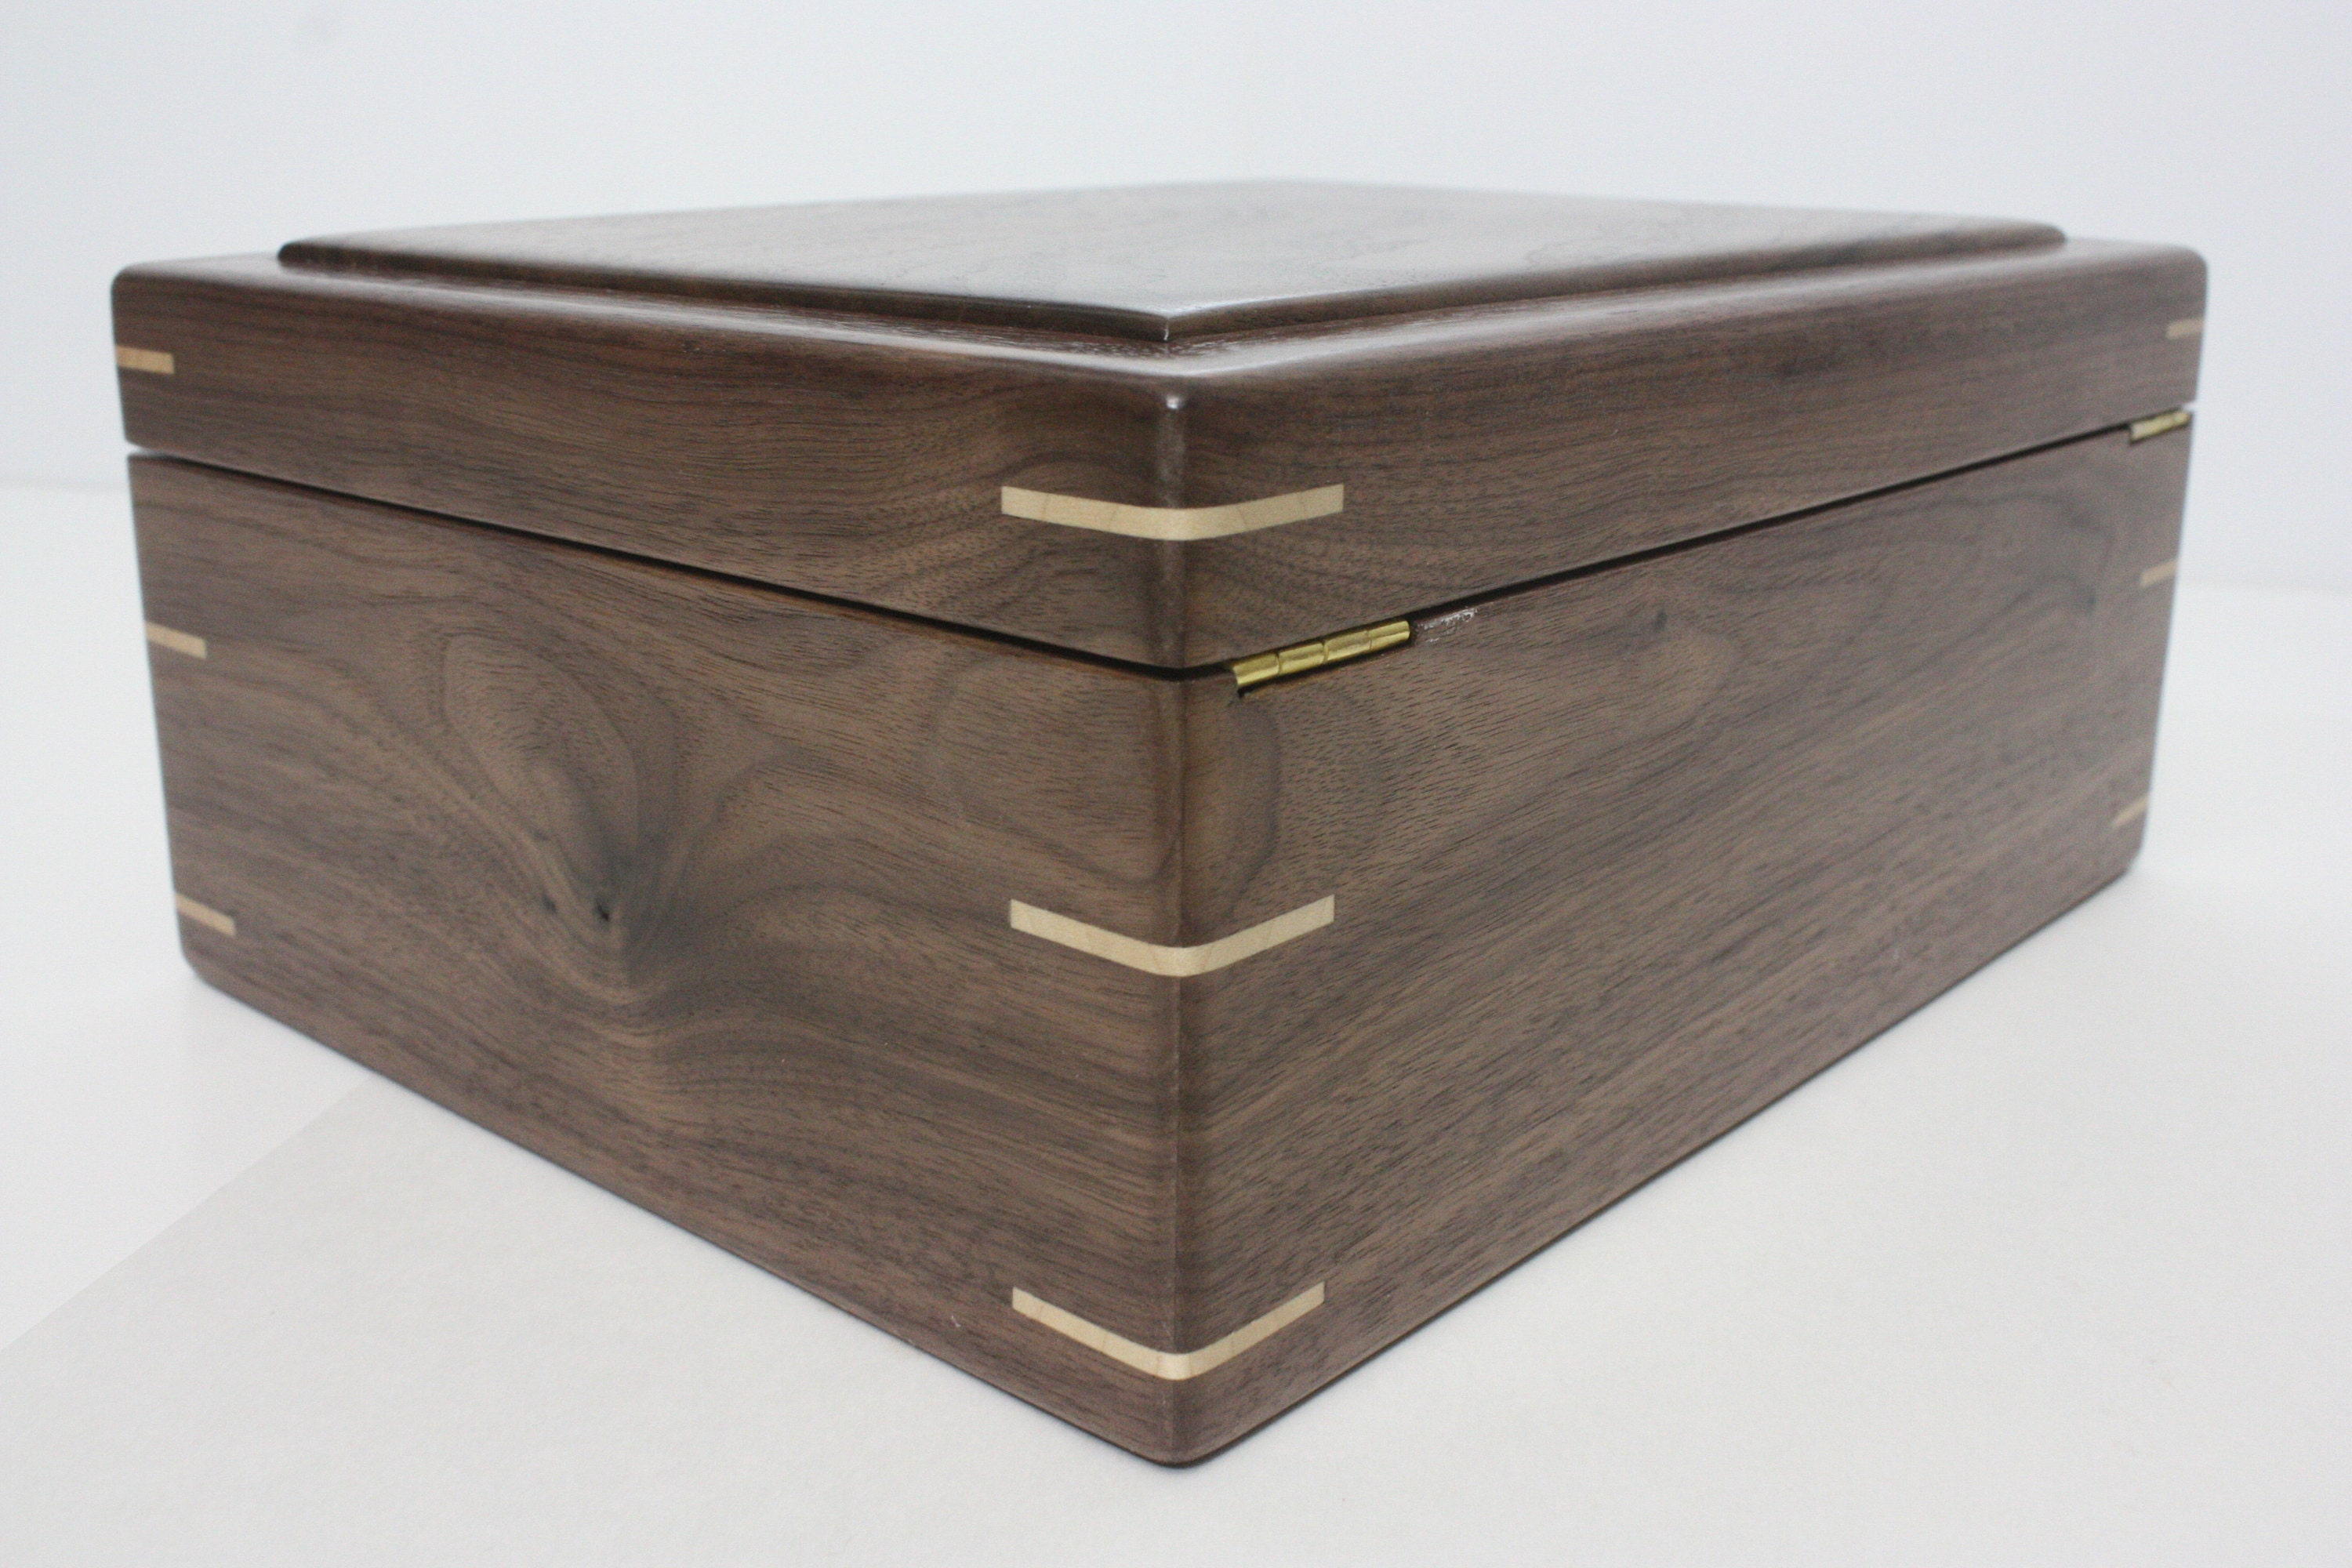 Handmade Locking Box with Quadrant Hinges